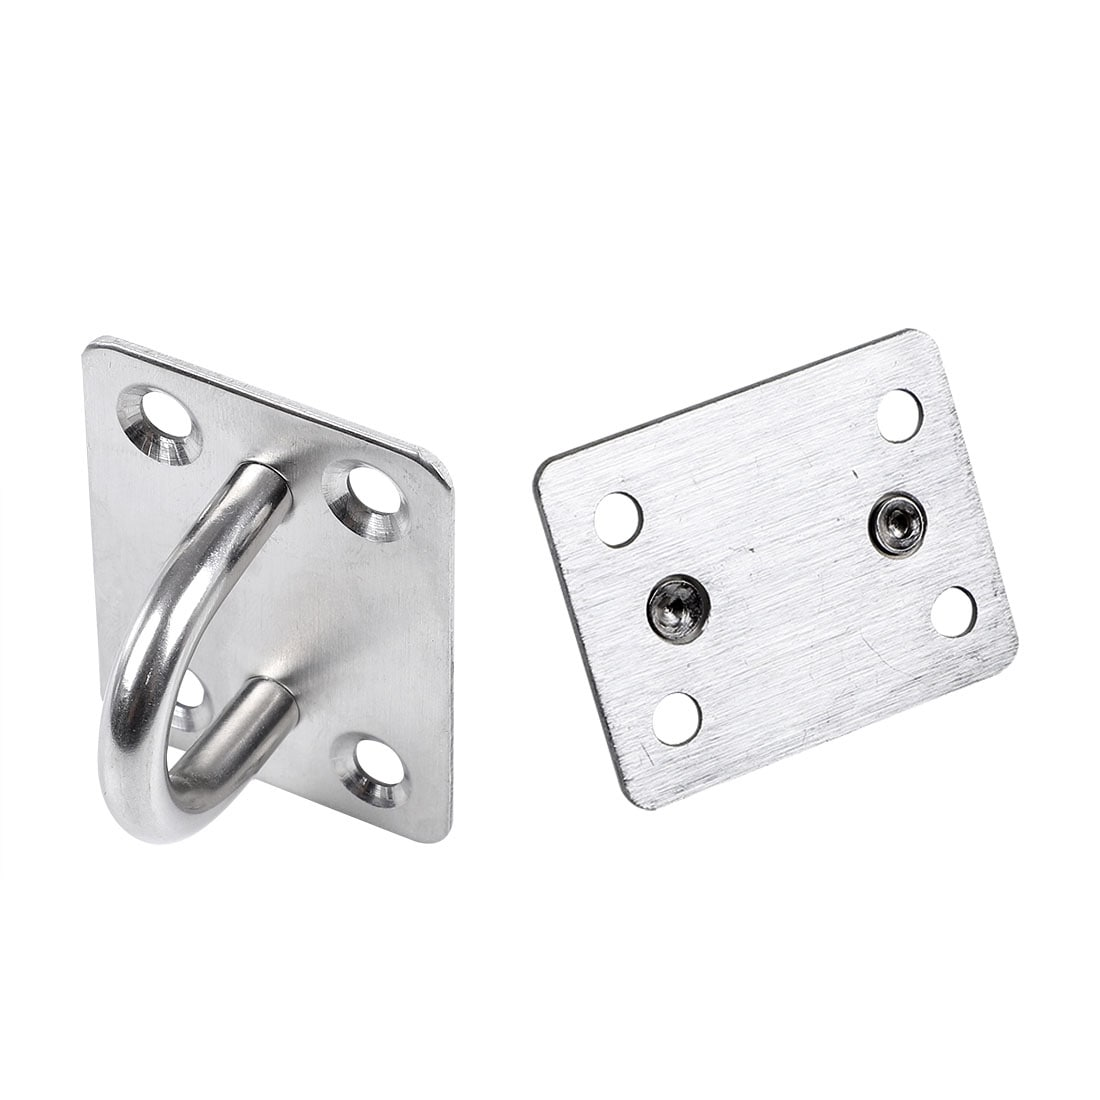 Stainless Steel Cabin Hook And Eye Latch Lock Shed Gate Door Catch Holder D/_N